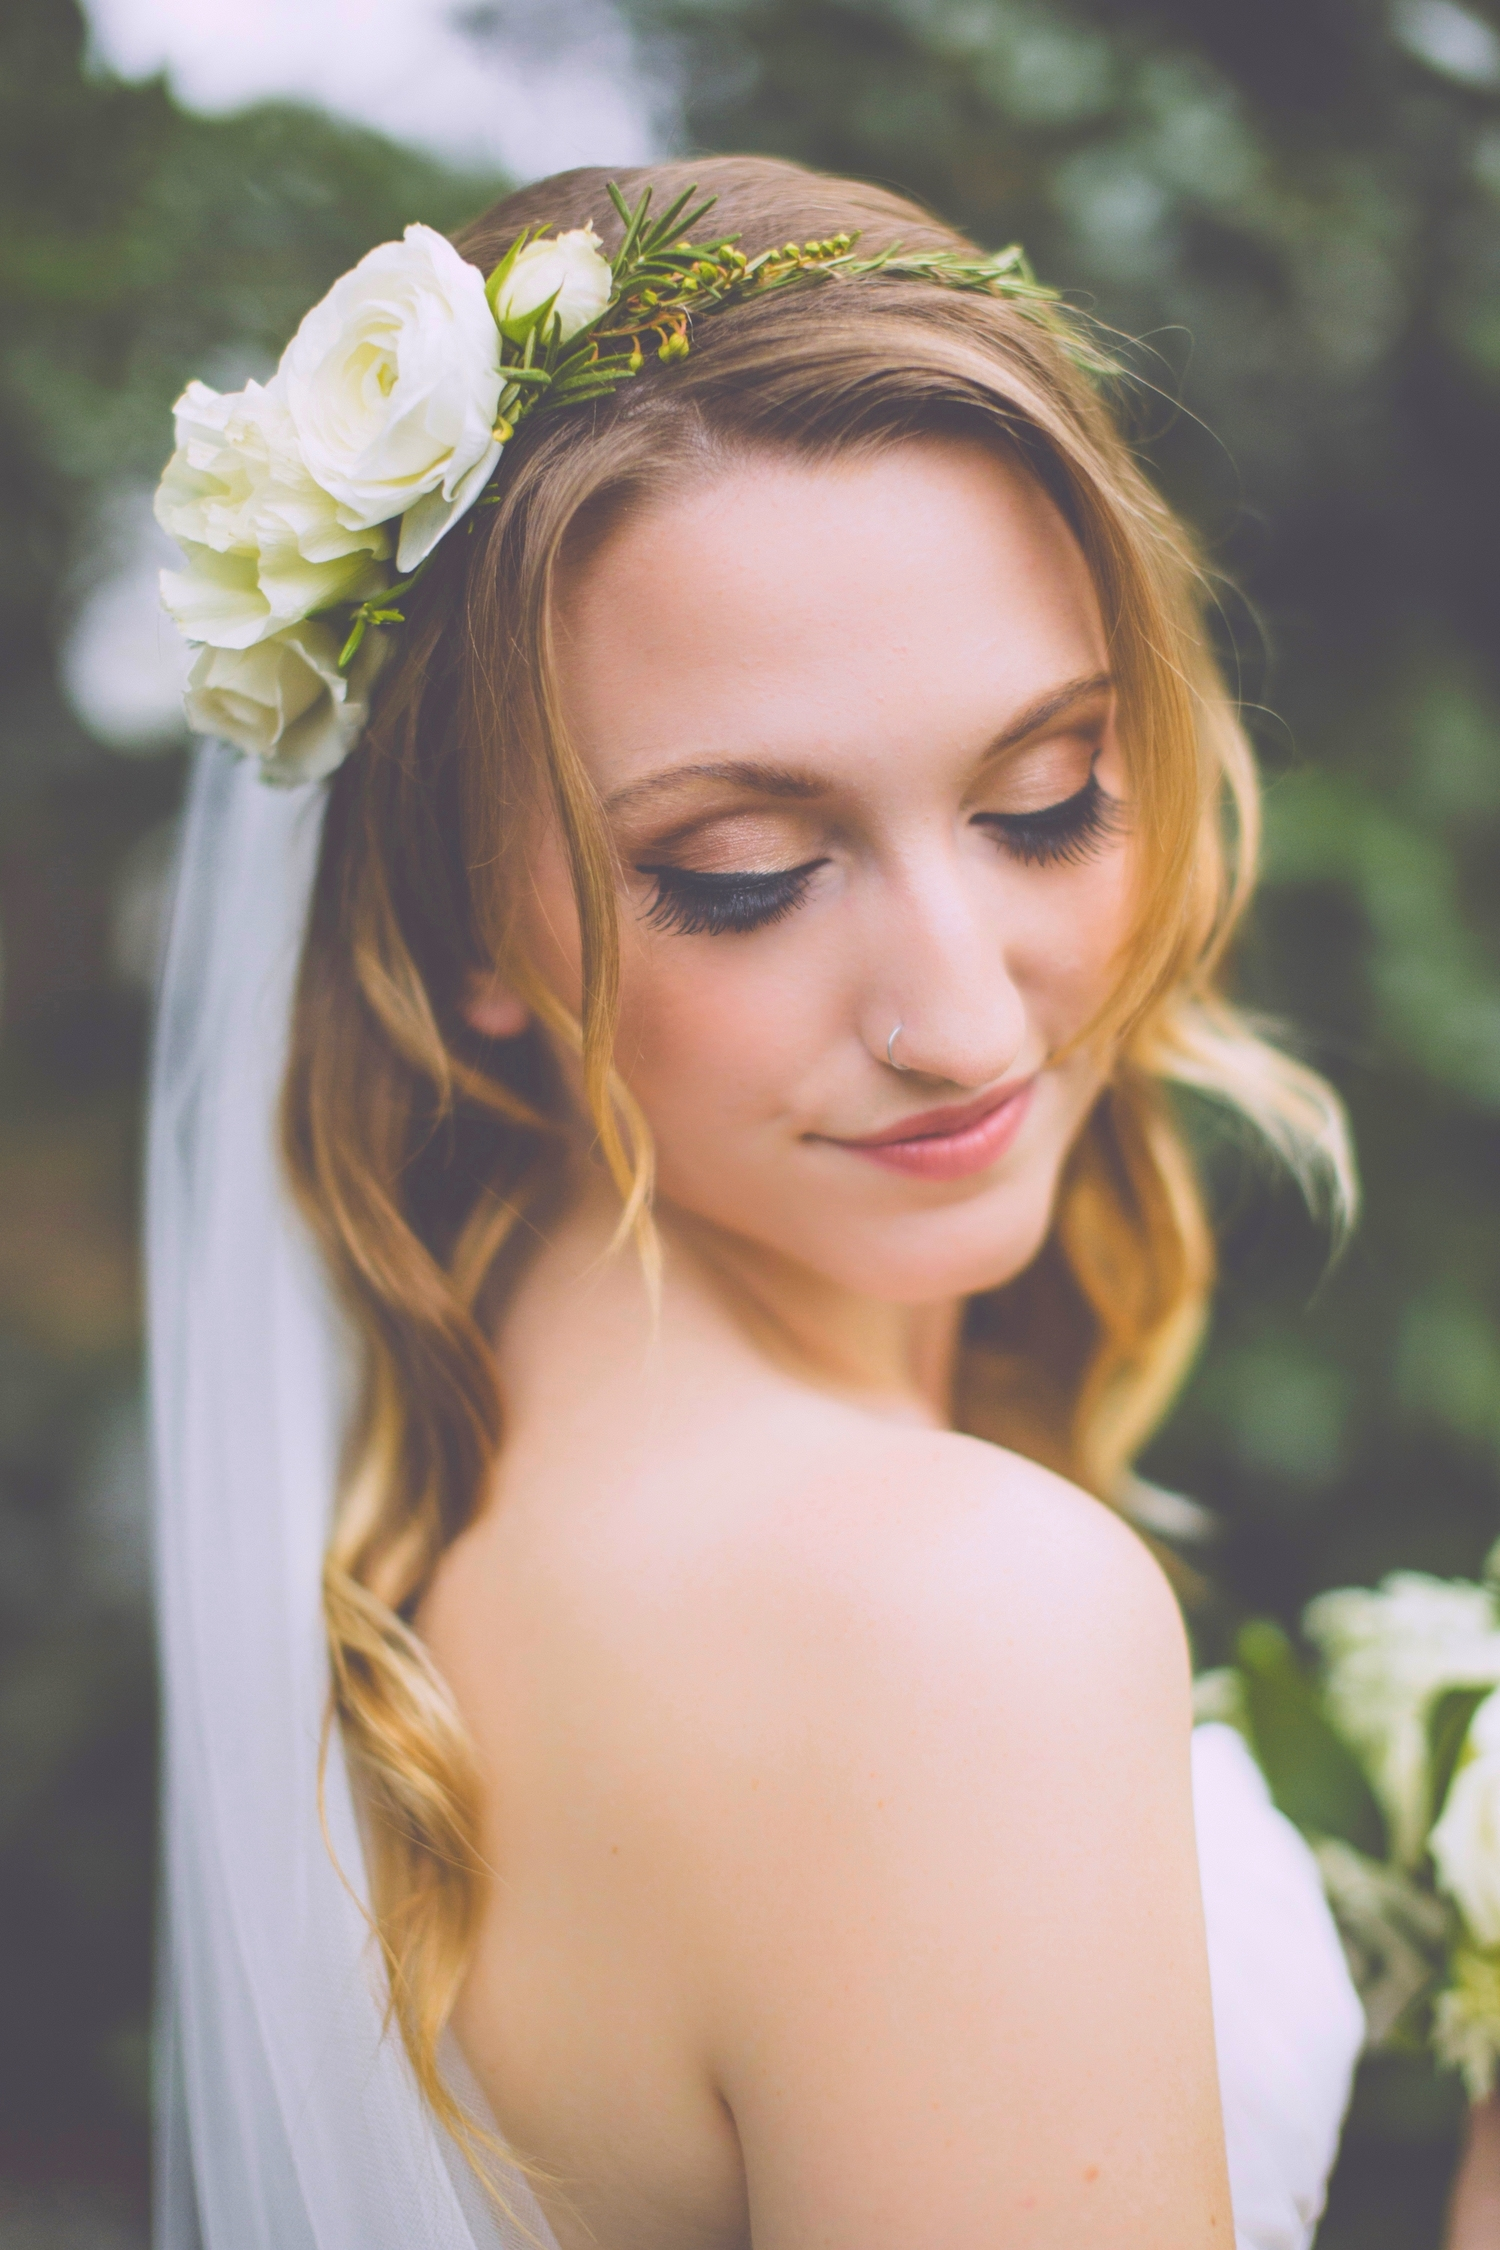 Bridal Airbrush Makeup and Hair Artistry by Beyond Beautiful by Heather, Savannah, GA.